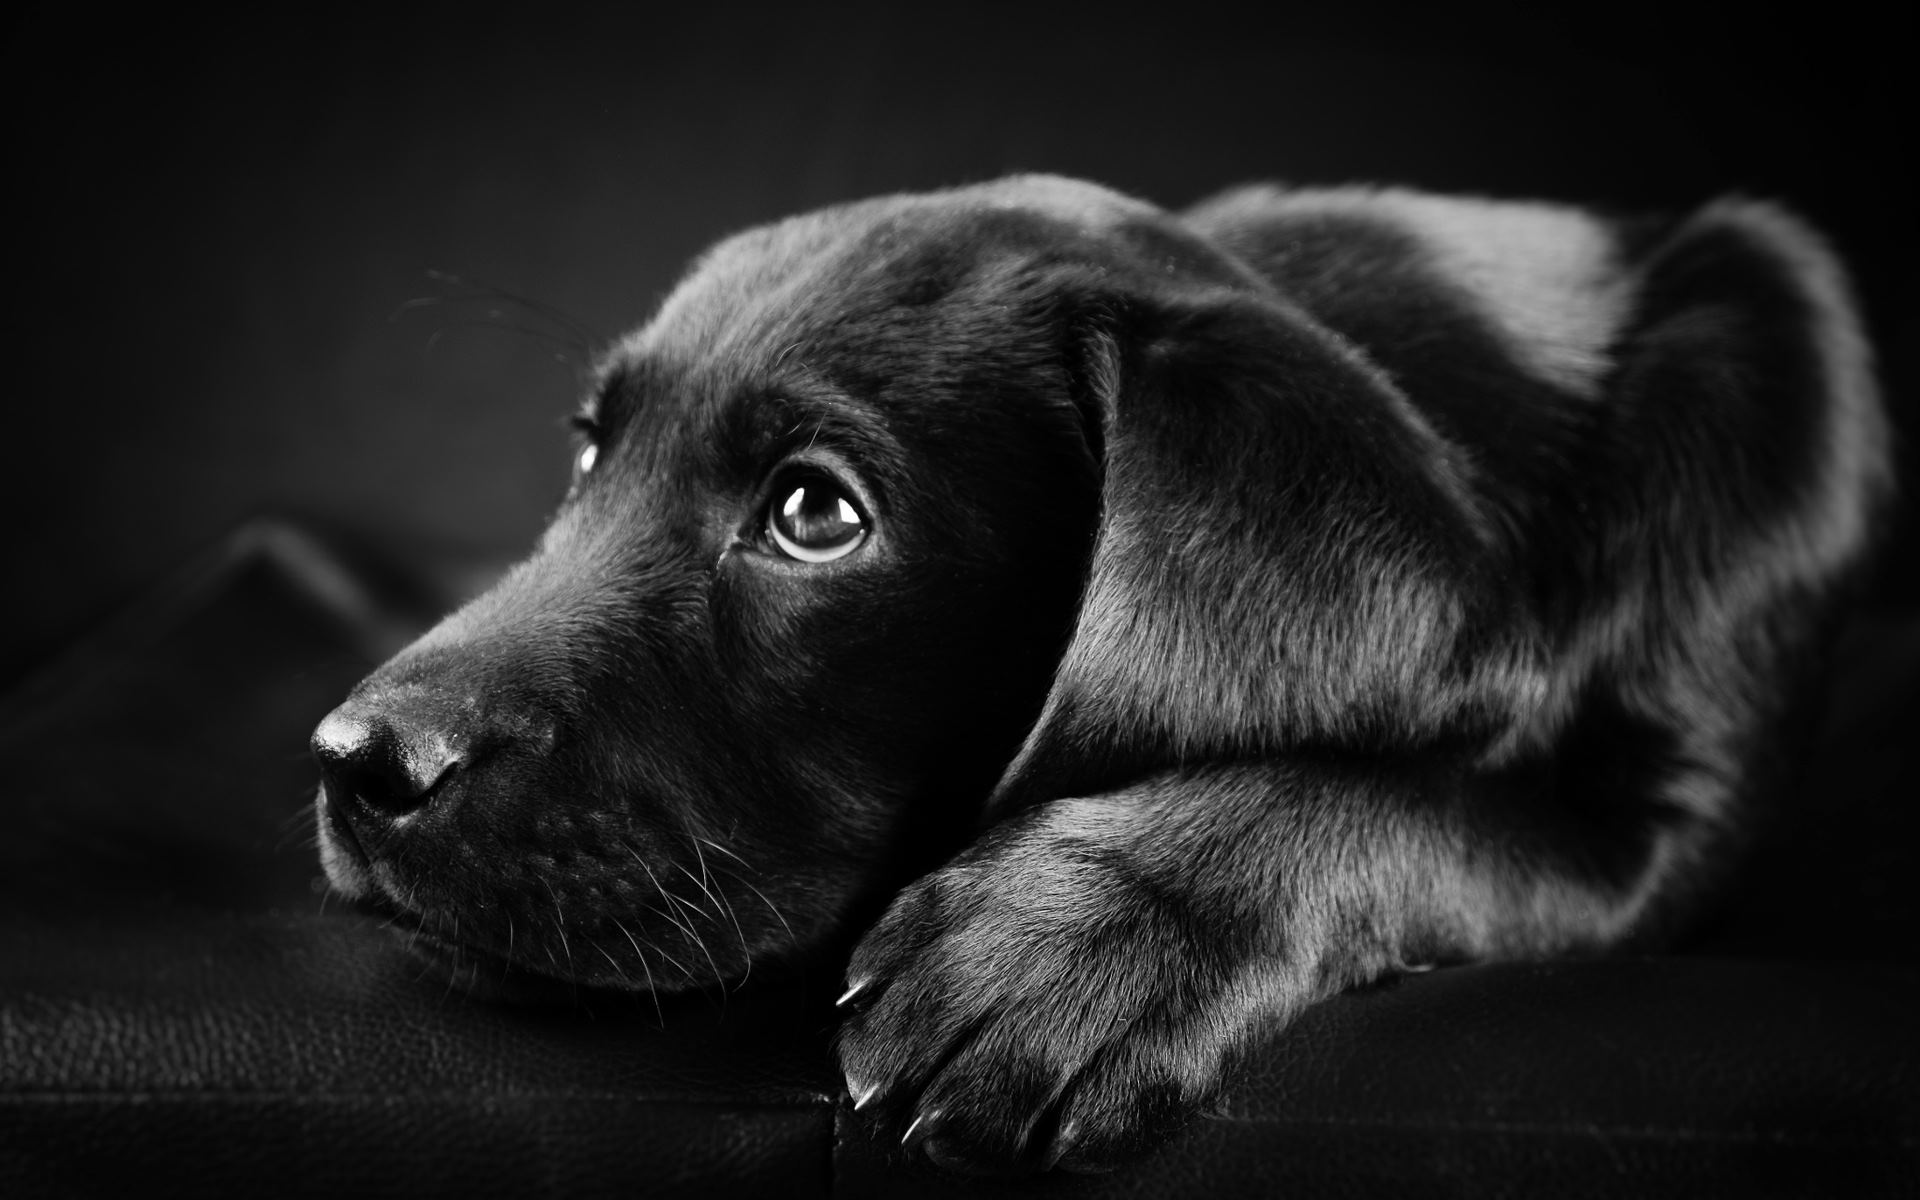 Wallpaper Hd Black Labrador Puppy   Litle Pups 1920x1200